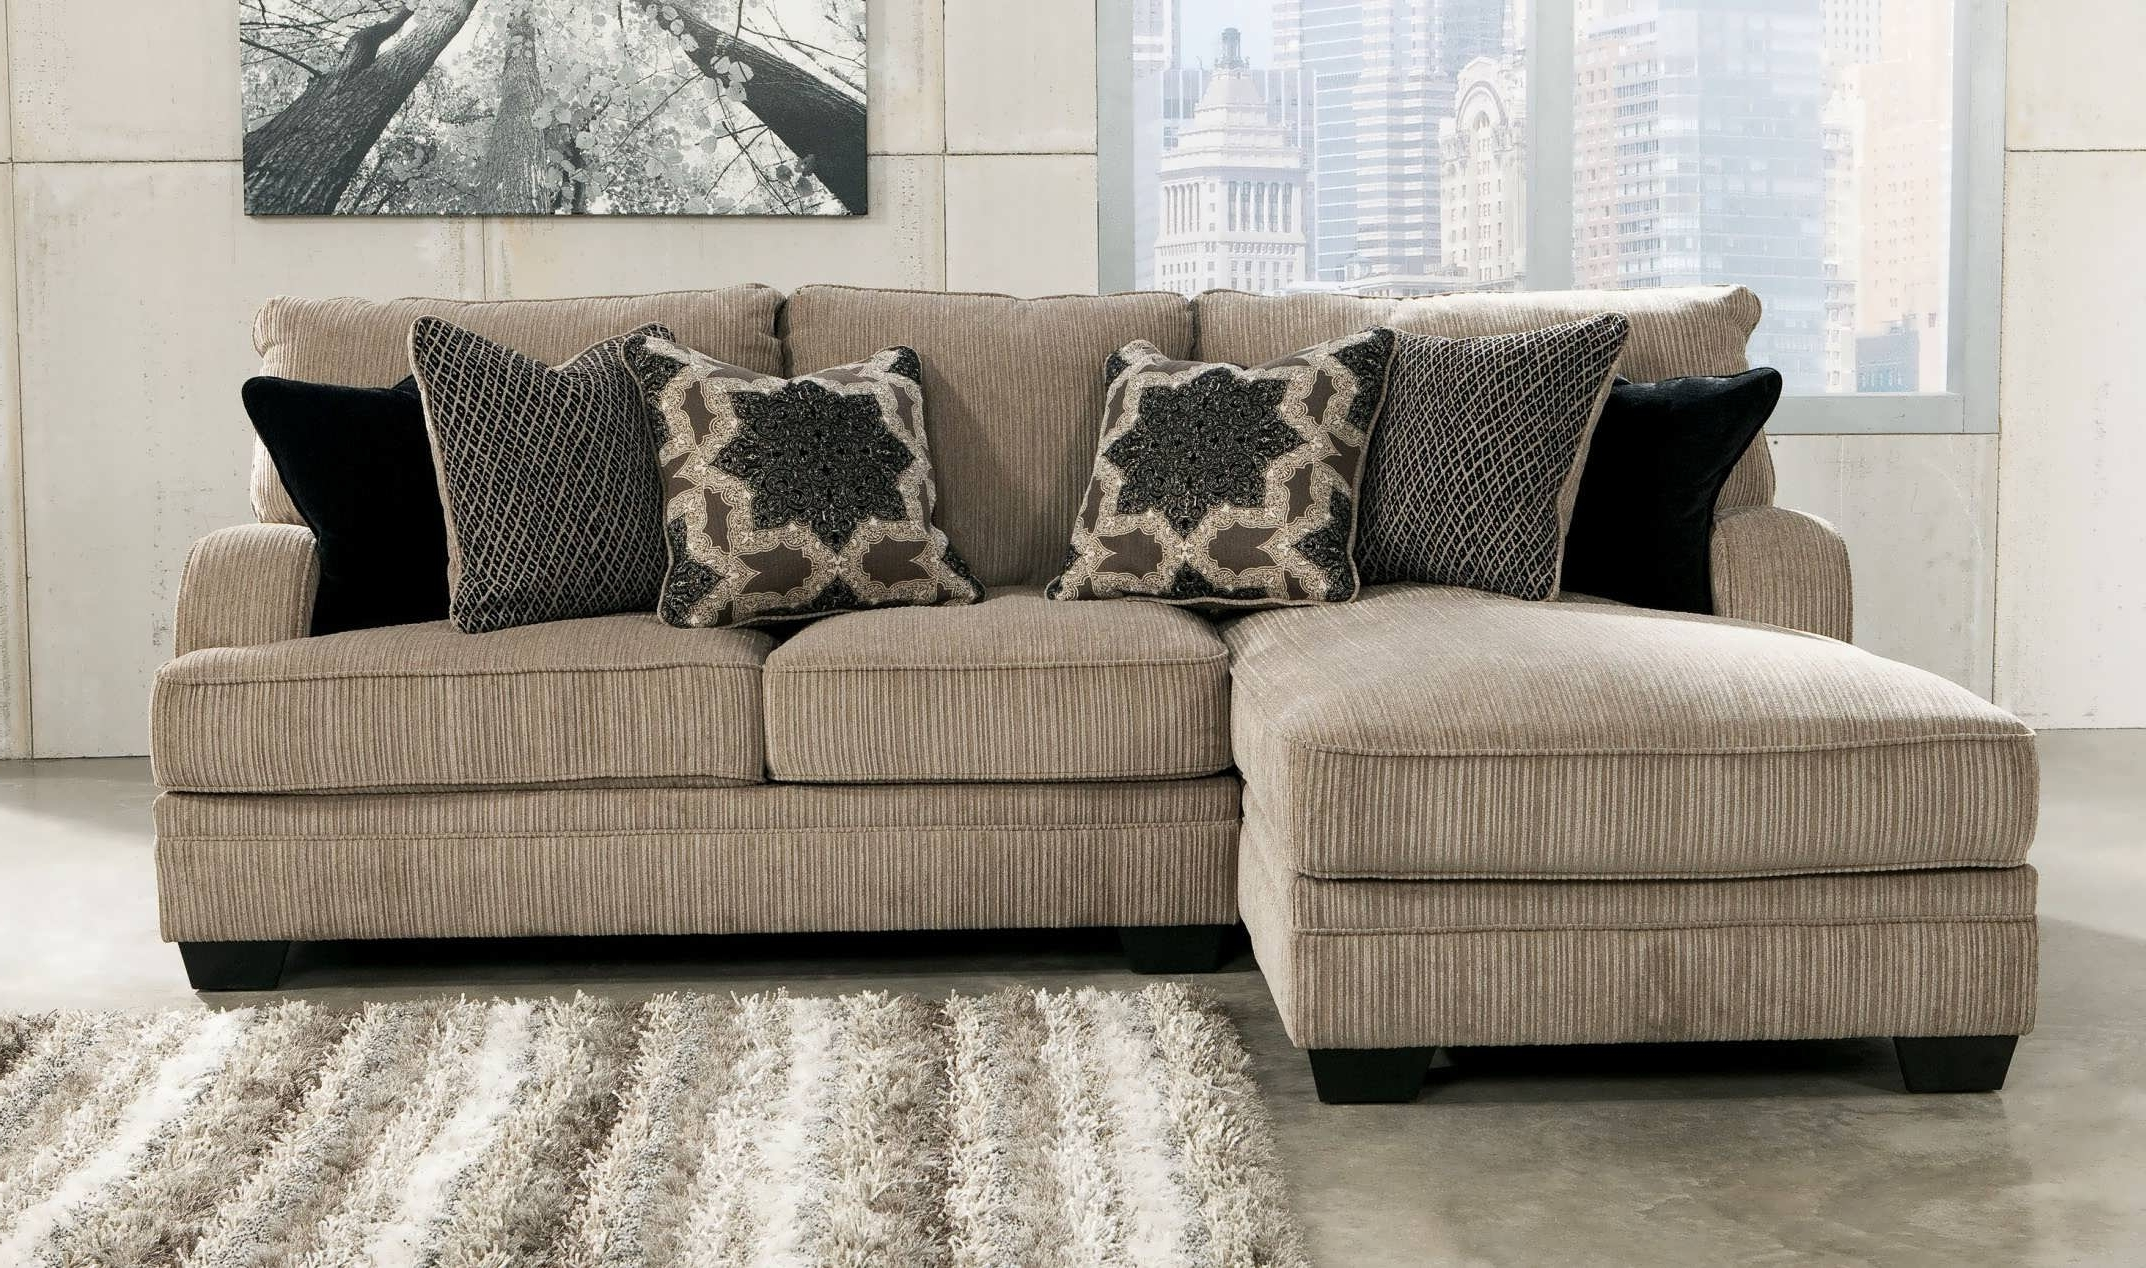 Sofa : Small Gray Sectional Best Sectional Couches Chaise Sofa For Newest Small Couches With Chaise Lounge (View 12 of 15)